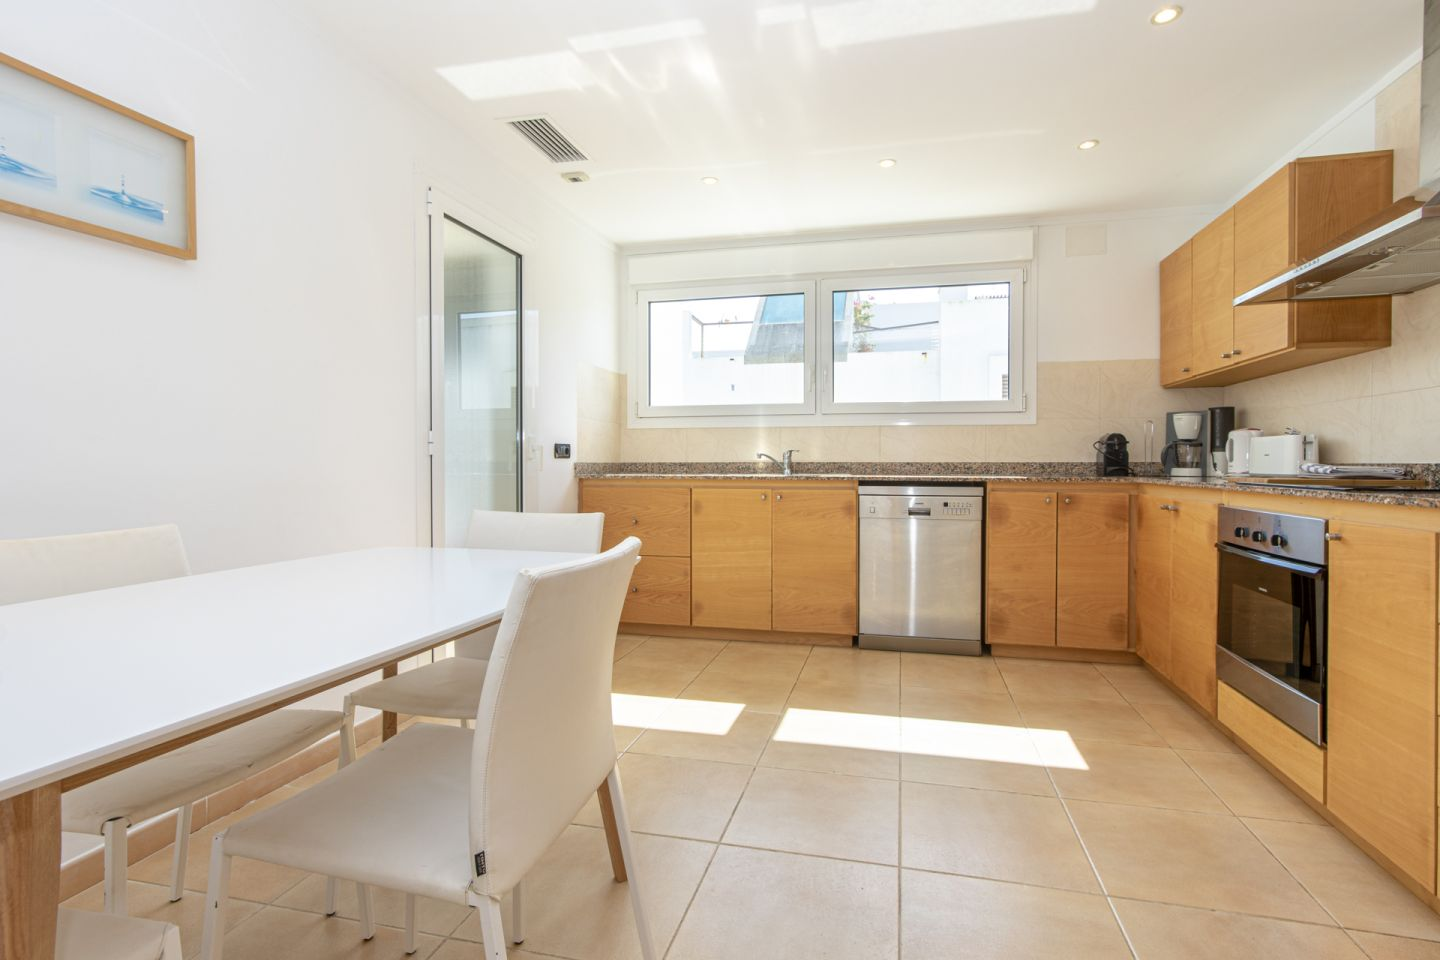 4 Bed Penthouse for sale in PUERTO POLLENSA 9